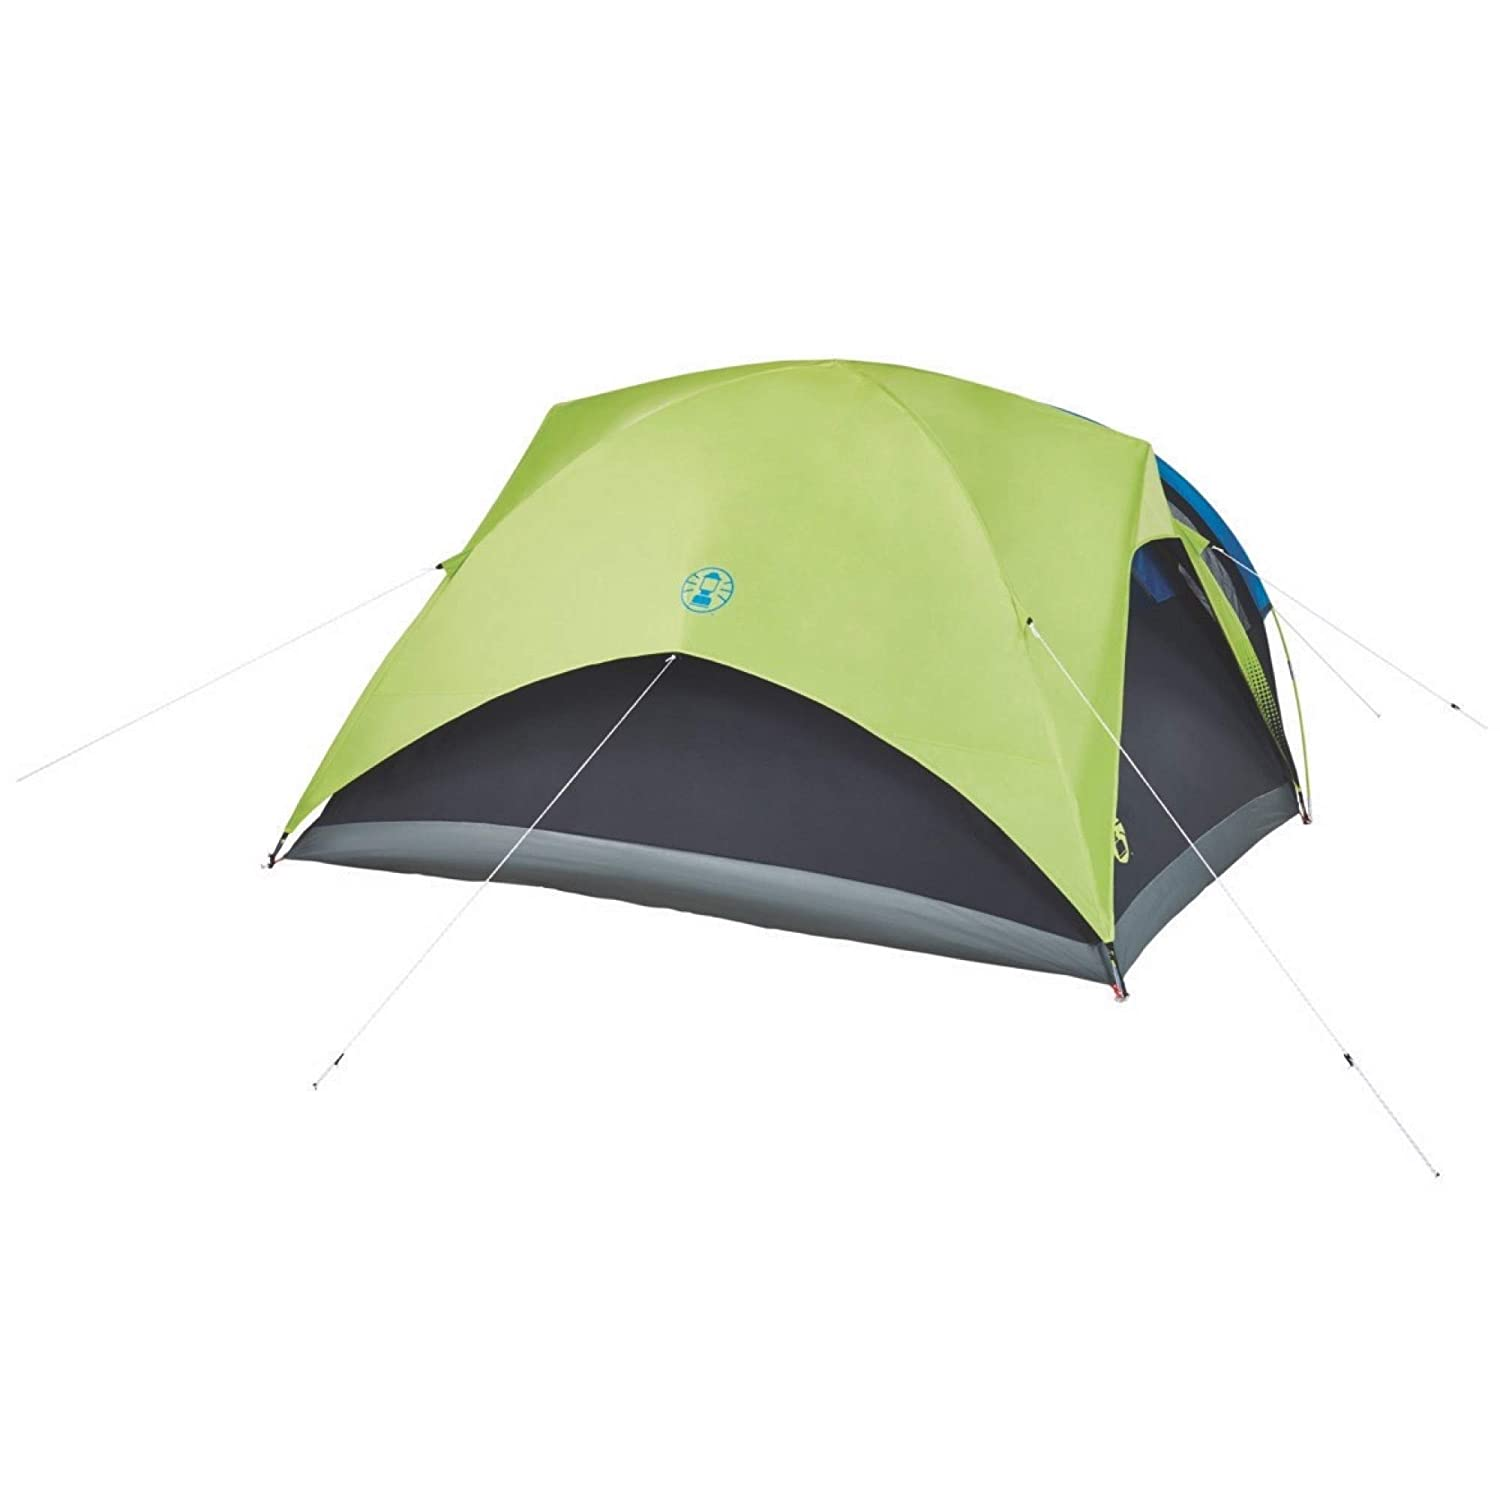 d5749d1cabd Amazon.com   Coleman Carlsbad Dome Tent with Screen Room   Sports   Outdoors